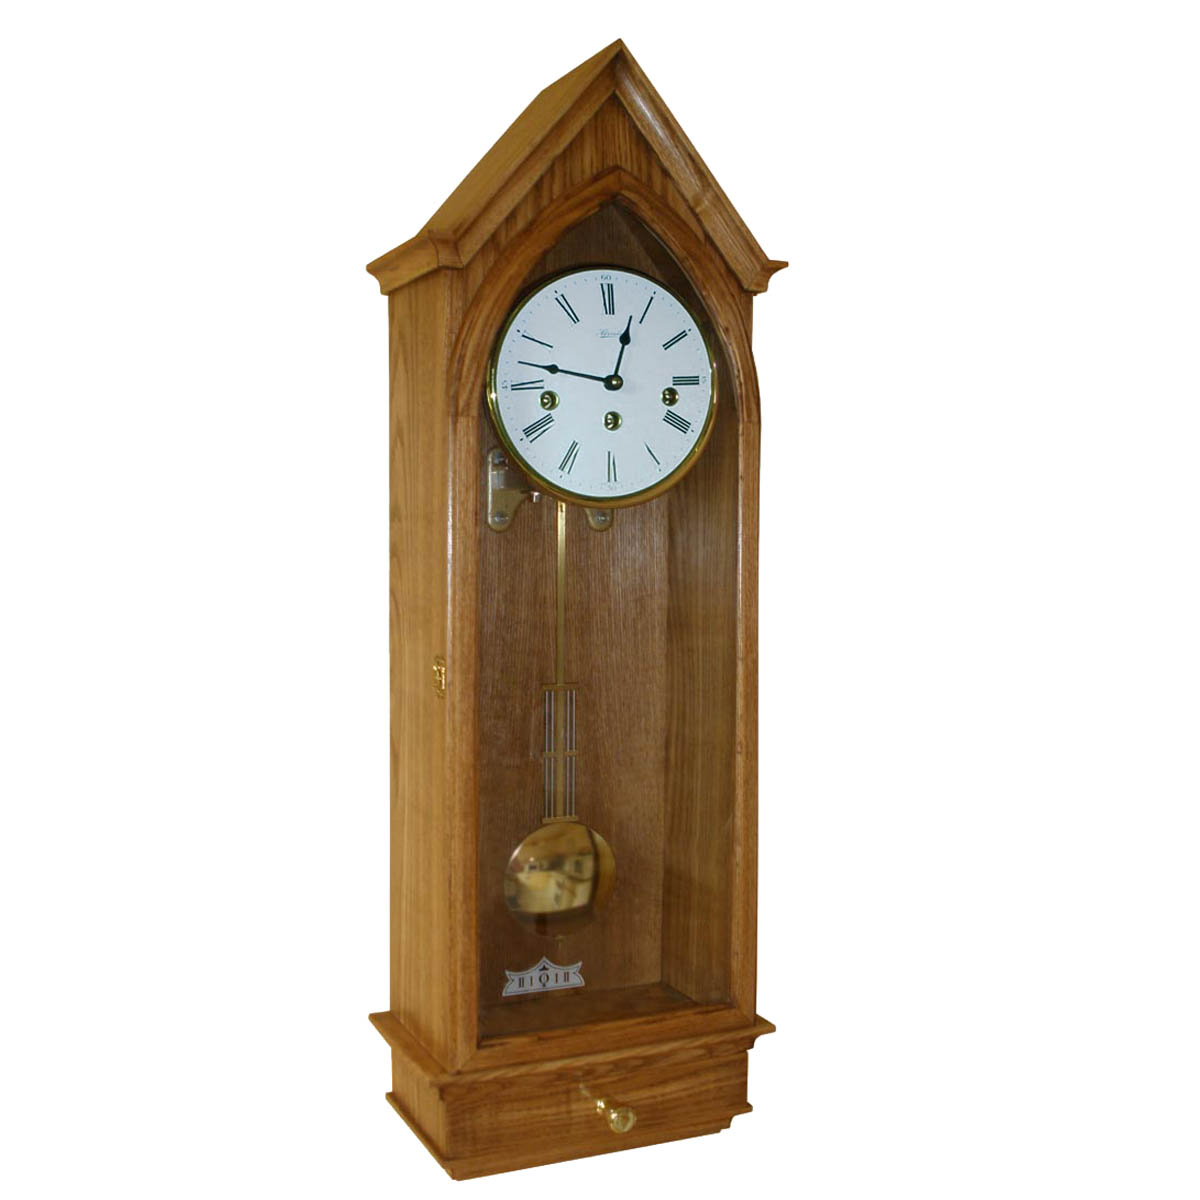 MURKIRK Regulator Wall Clock